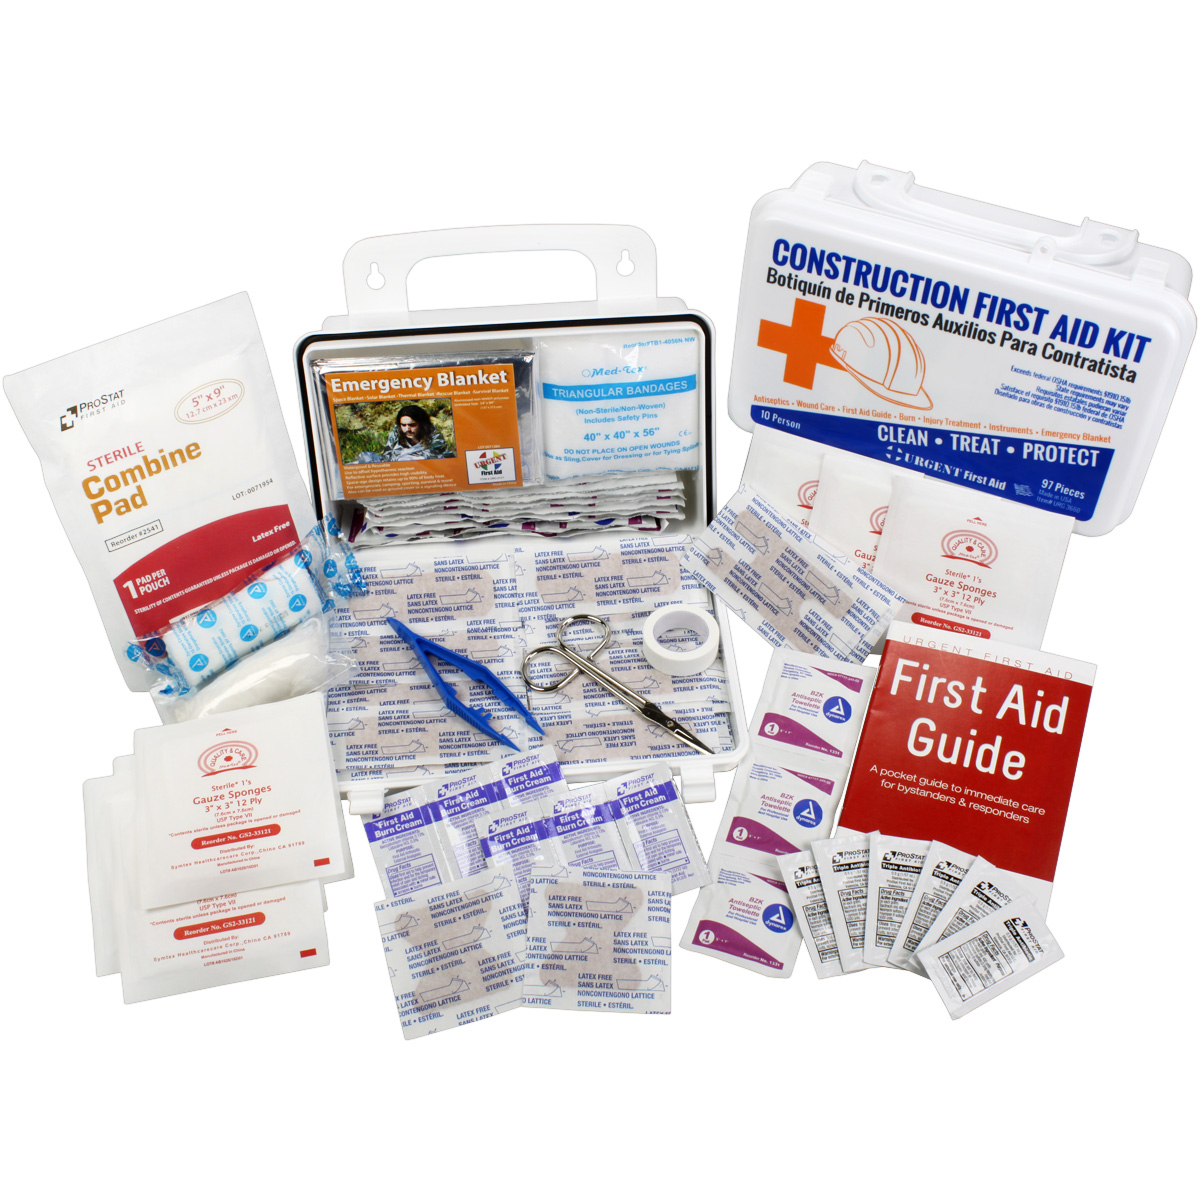 OSHA Contractors First Aid Kit for Job Sites up to 10 People ? Gasketed Plastic, 97 pieces by Urgent First Aid